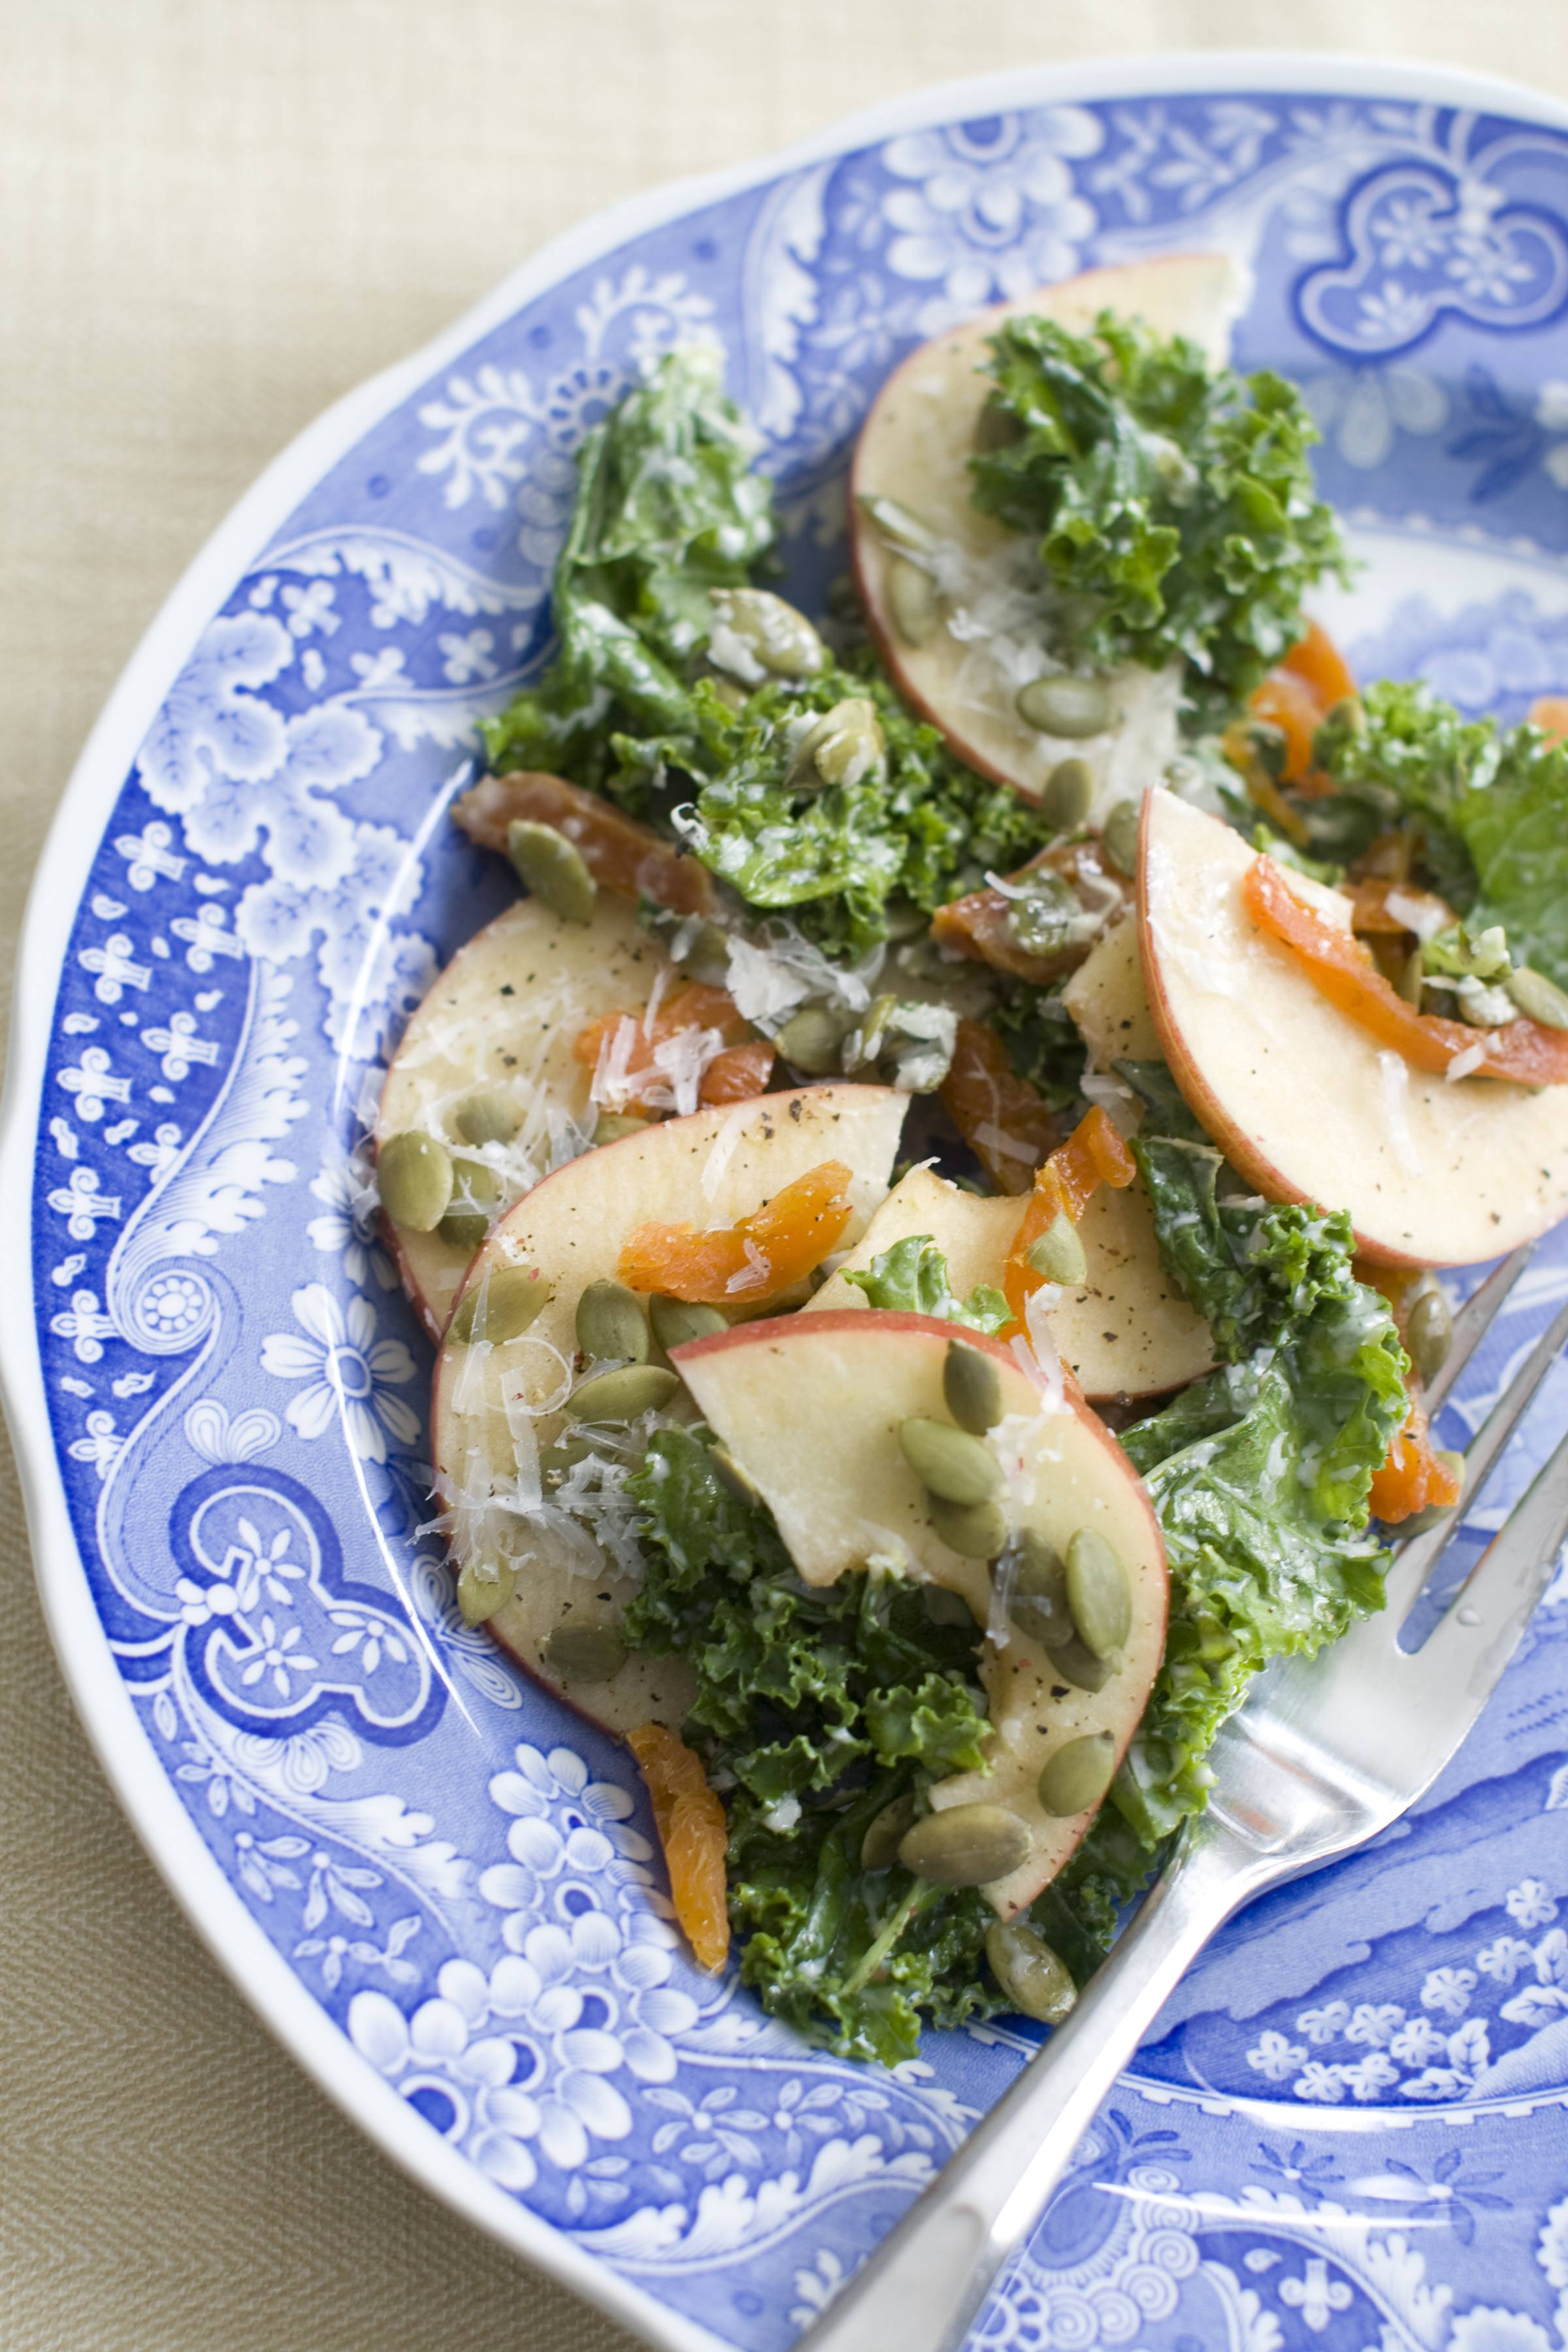 Kale salad gets a boost from apricots and manchego cheese.